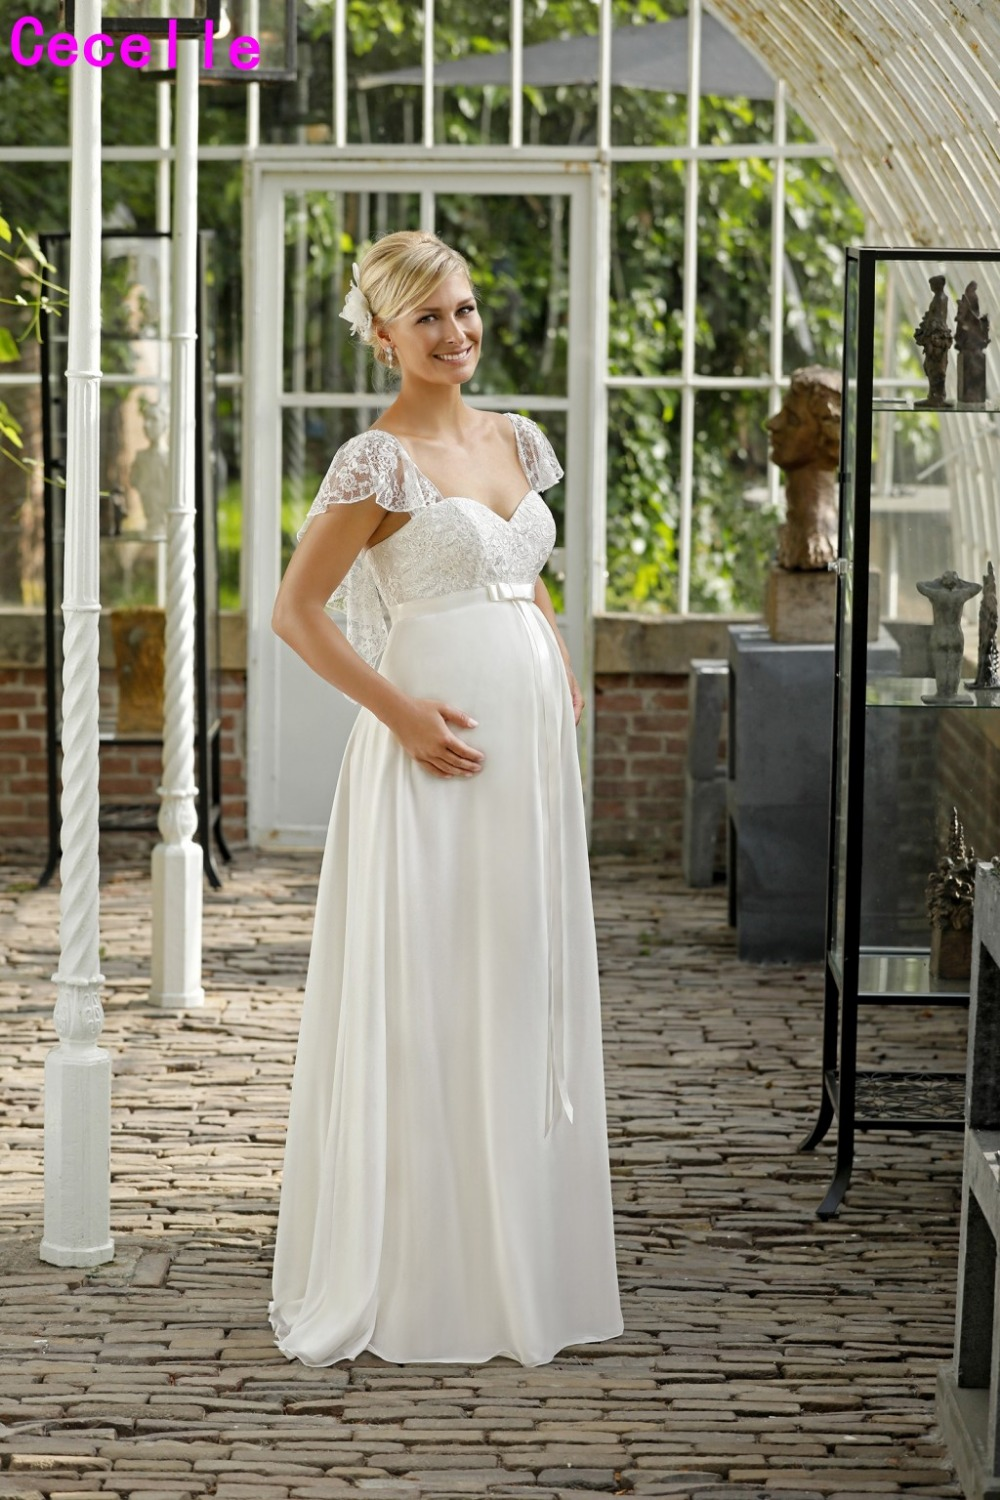 Weddings & Events Empire Waist Maternity Wedding Dresses 2019 Elegant Beaded Crystals Chiffon Informal Reception Wedding Gowns For Pregnant Women Spare No Cost At Any Cost